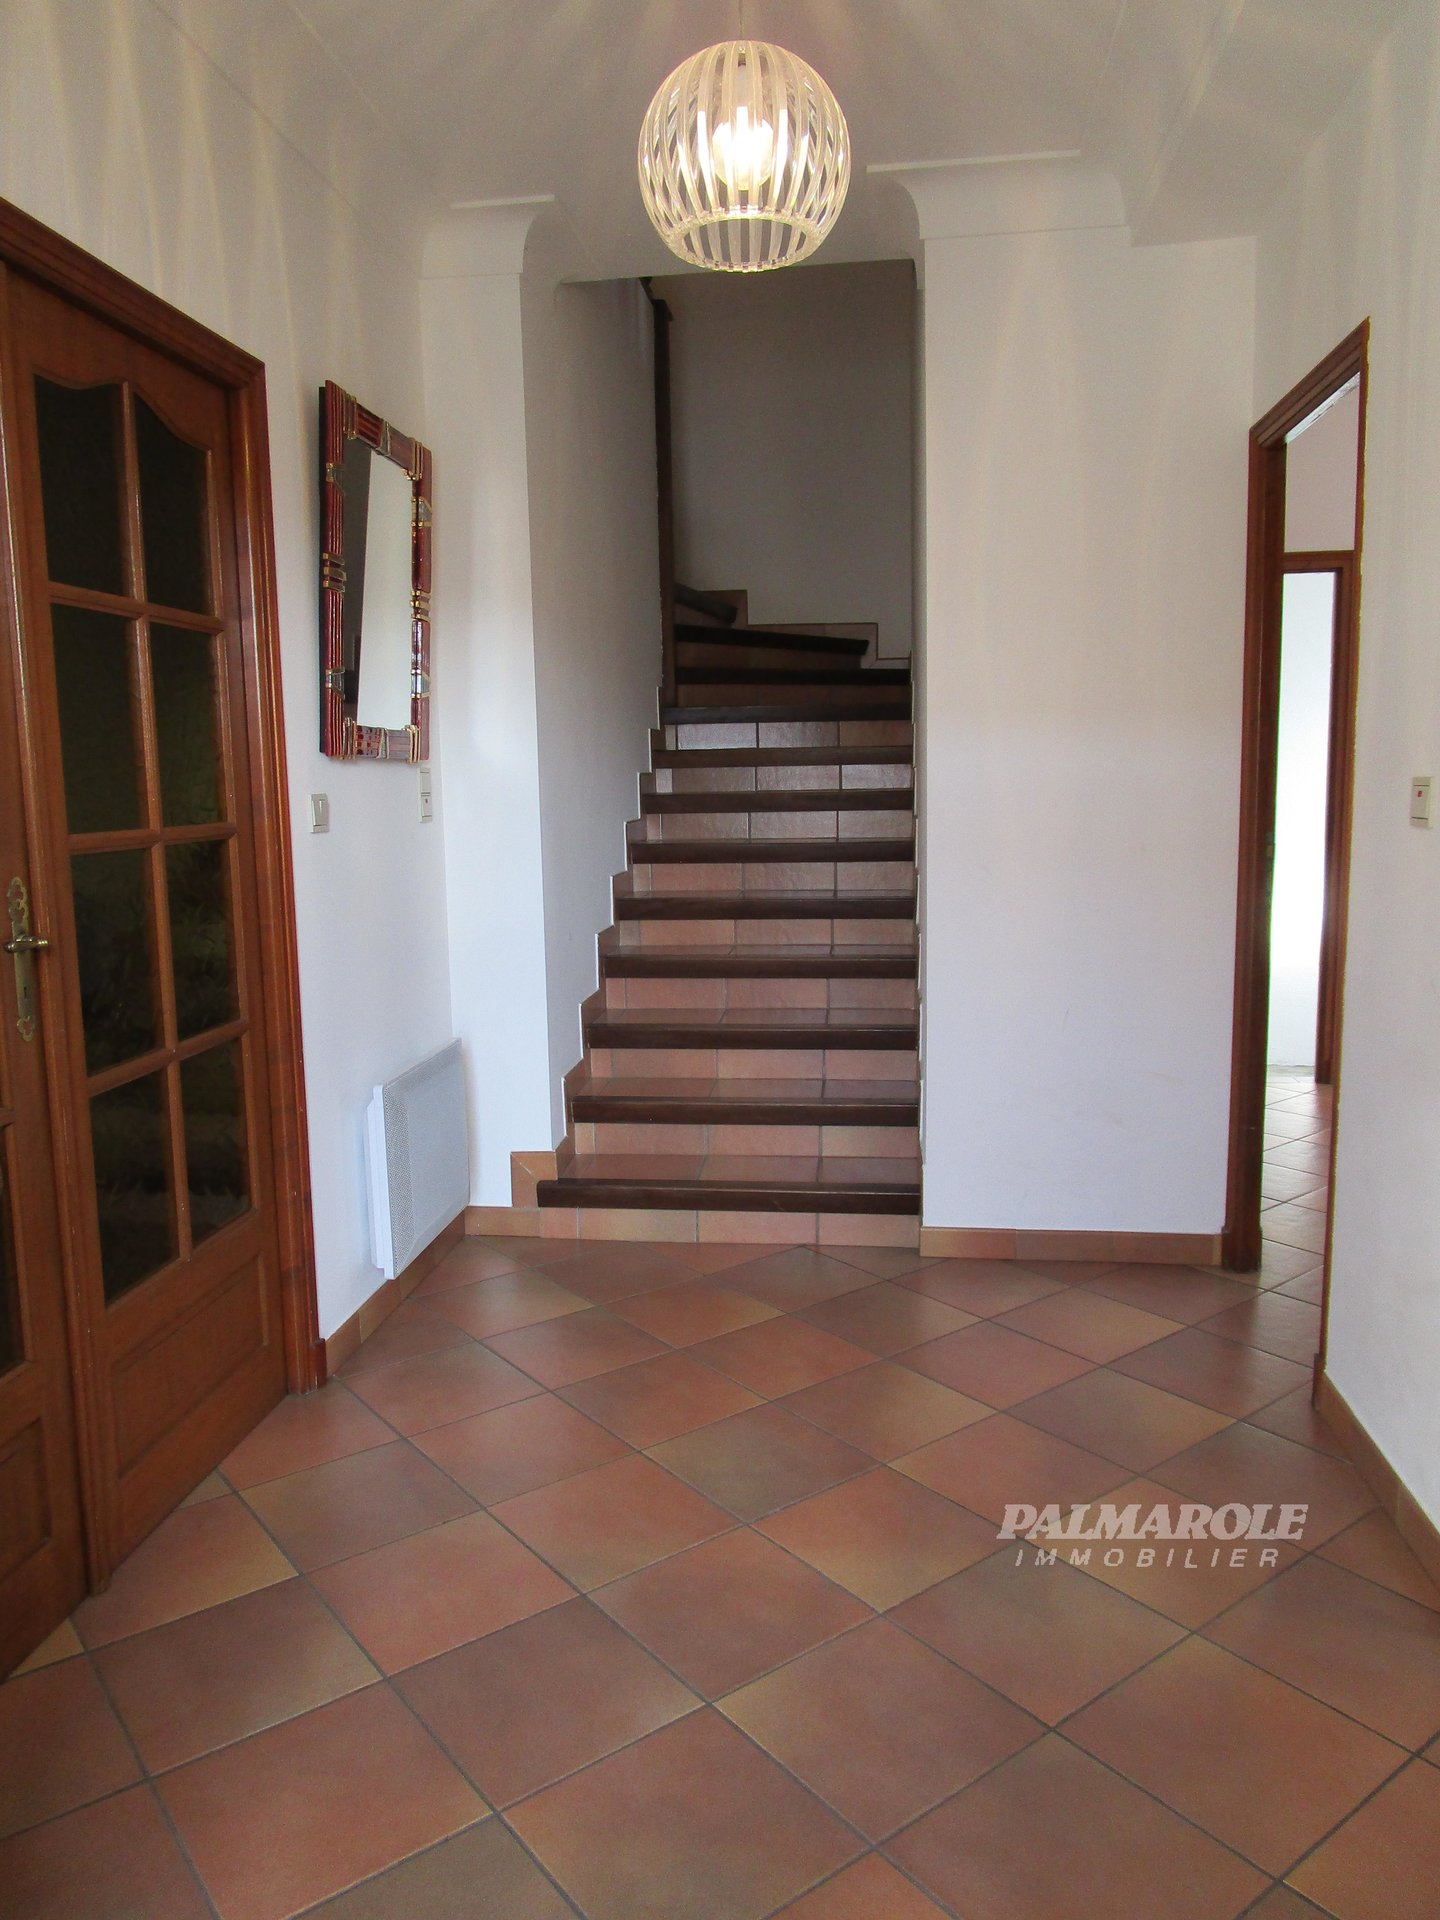 PERPIGNAN VILLA 3 FACES-ST ASSISCLE